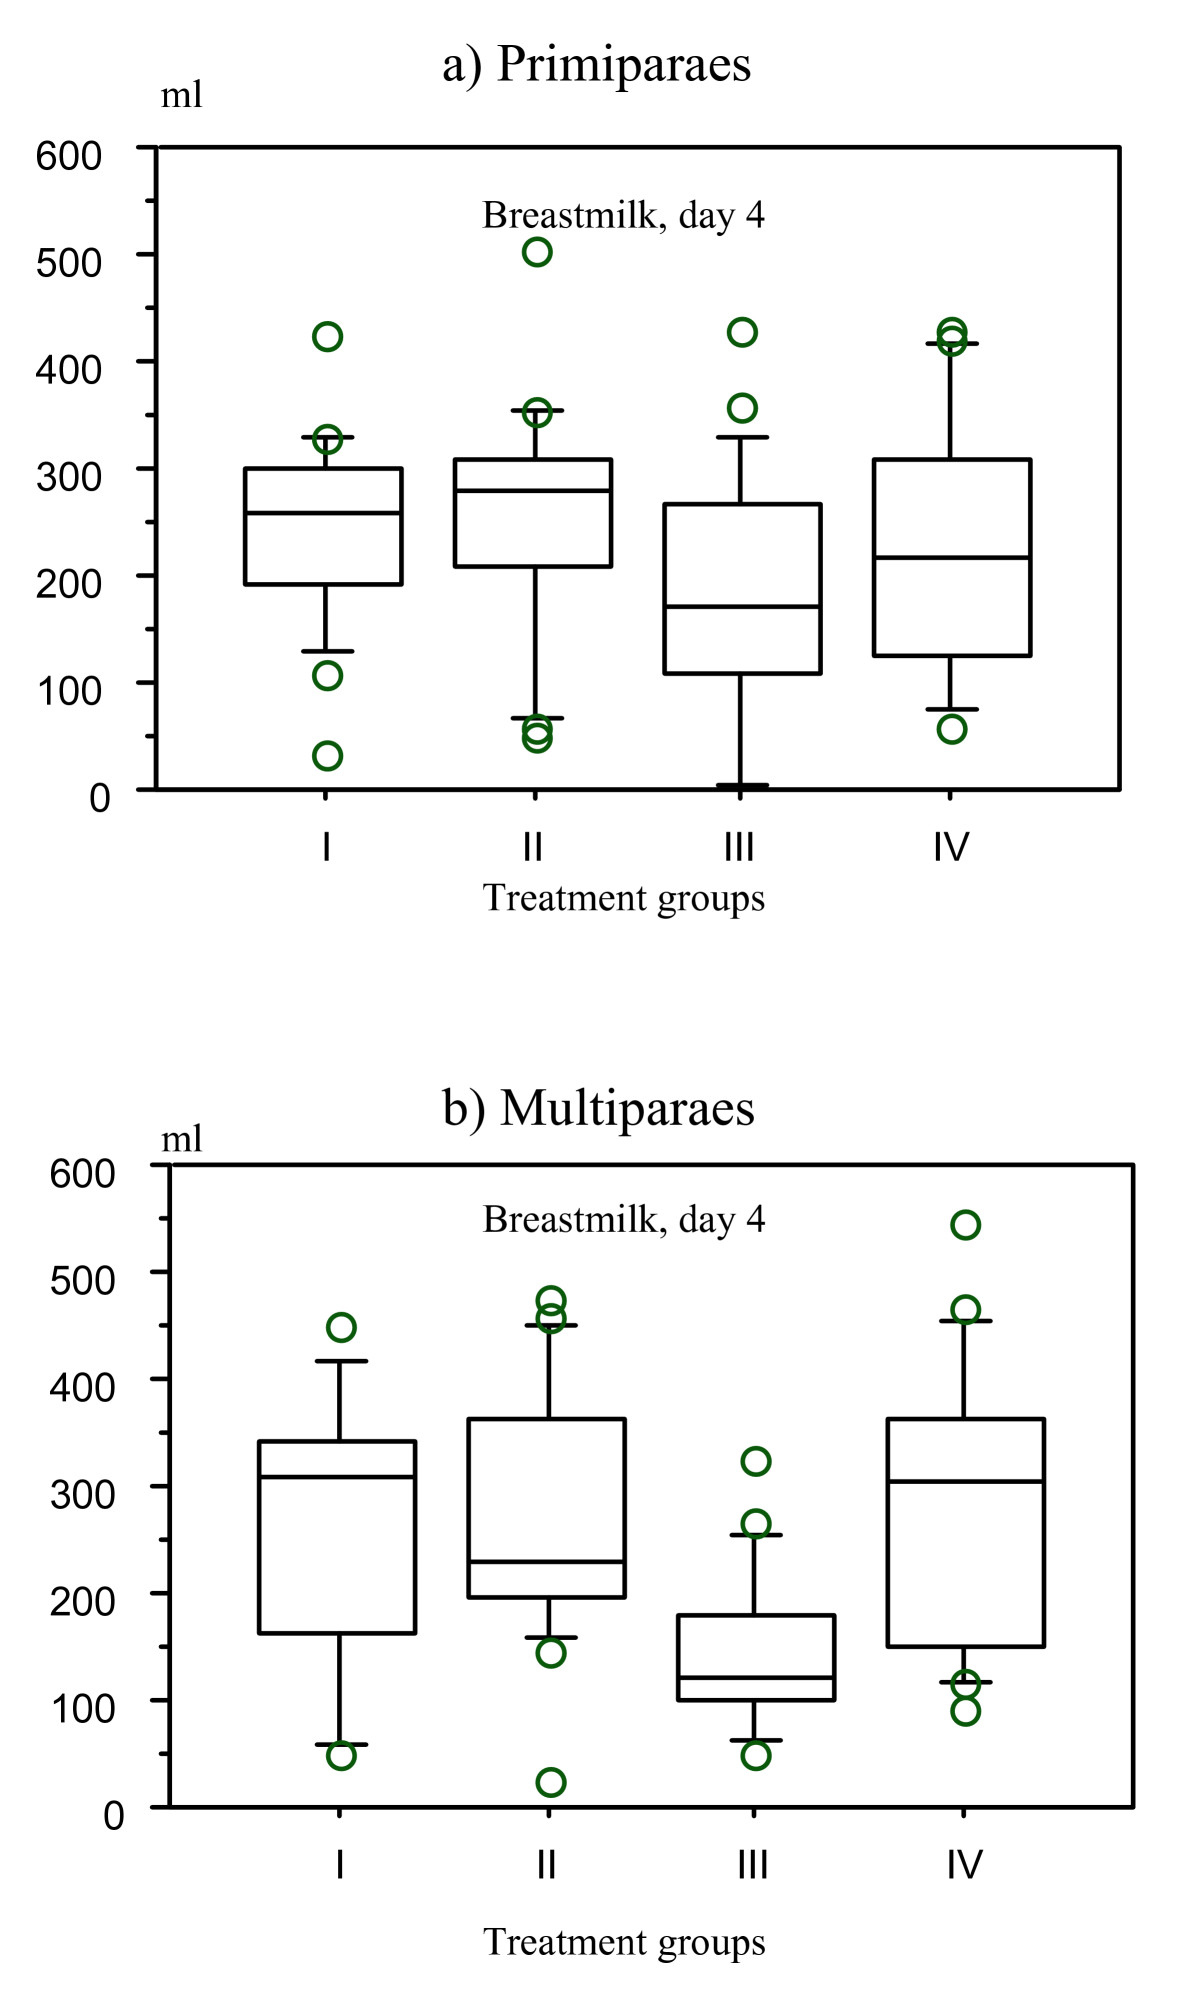 http://static-content.springer.com/image/art%3A10.1186%2F1746-4358-2-9/MediaObjects/13006_2005_Article_38_Fig4_HTML.jpg